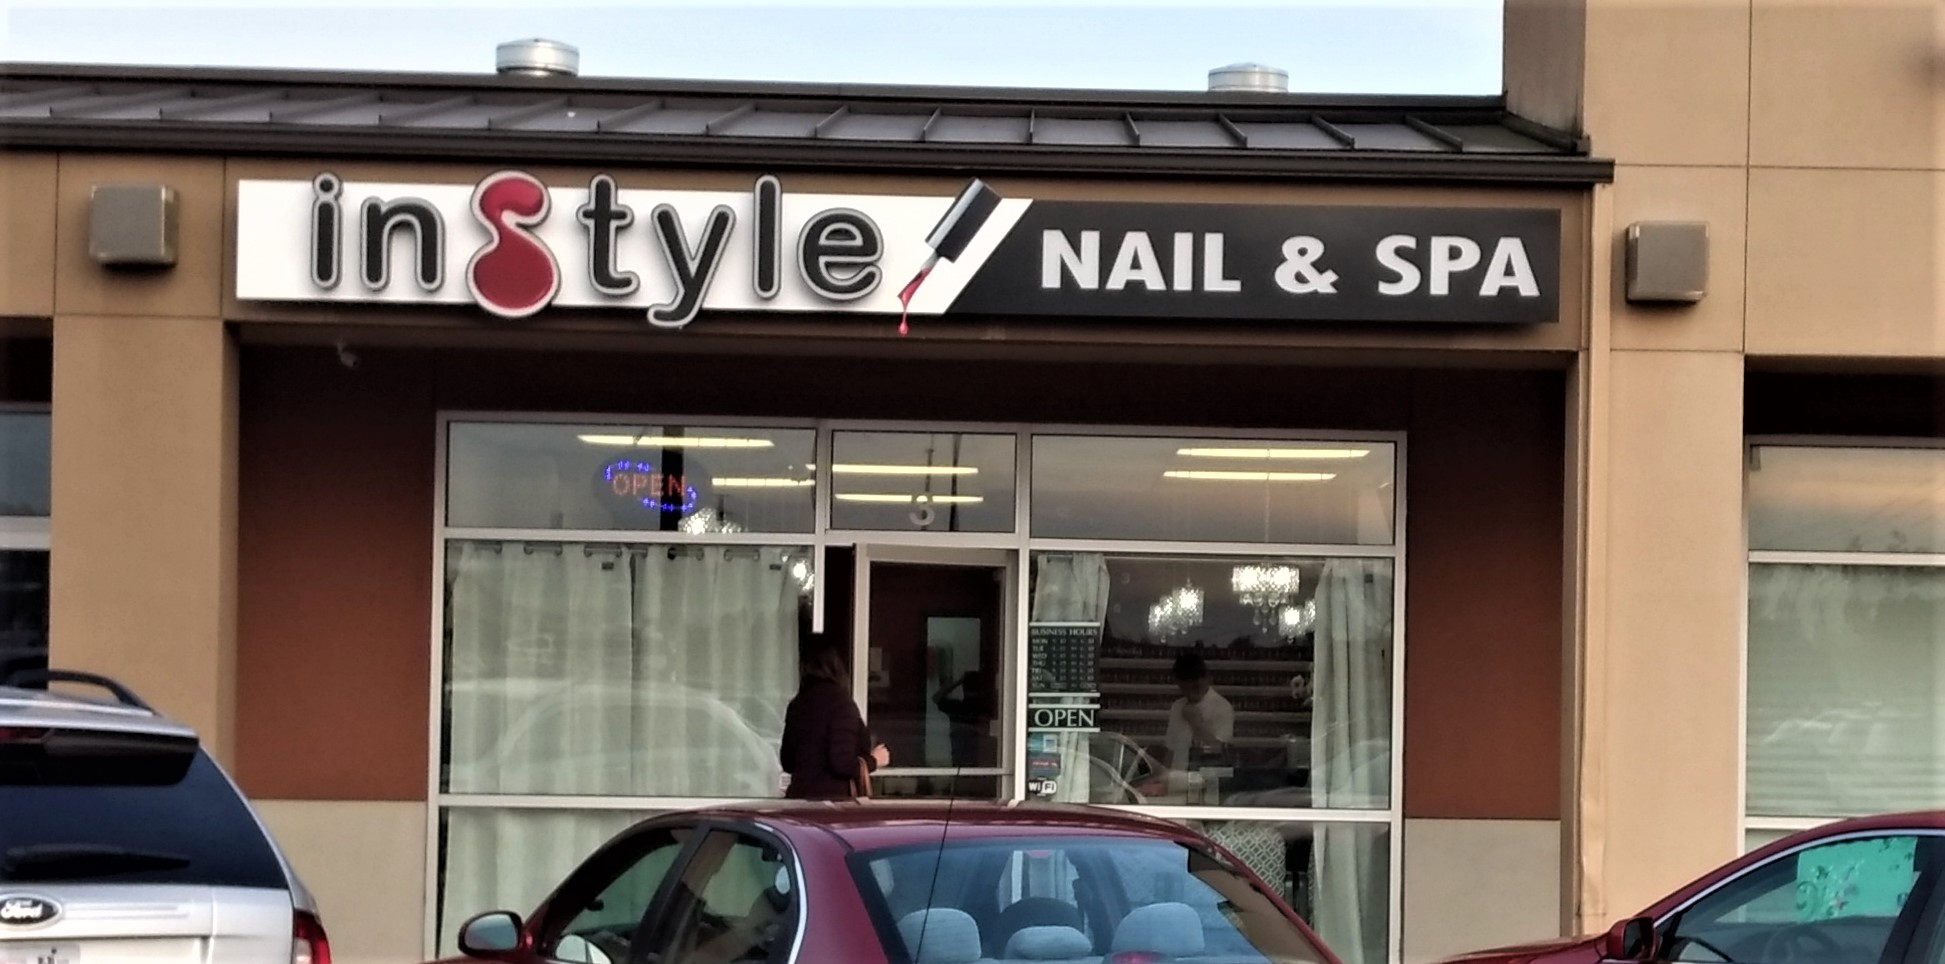 Exterior of the Instyle Nail & Spa at 1730 LaBounty Drive in Suite #3 (October 14, 2019). Photo: My Ferndale News